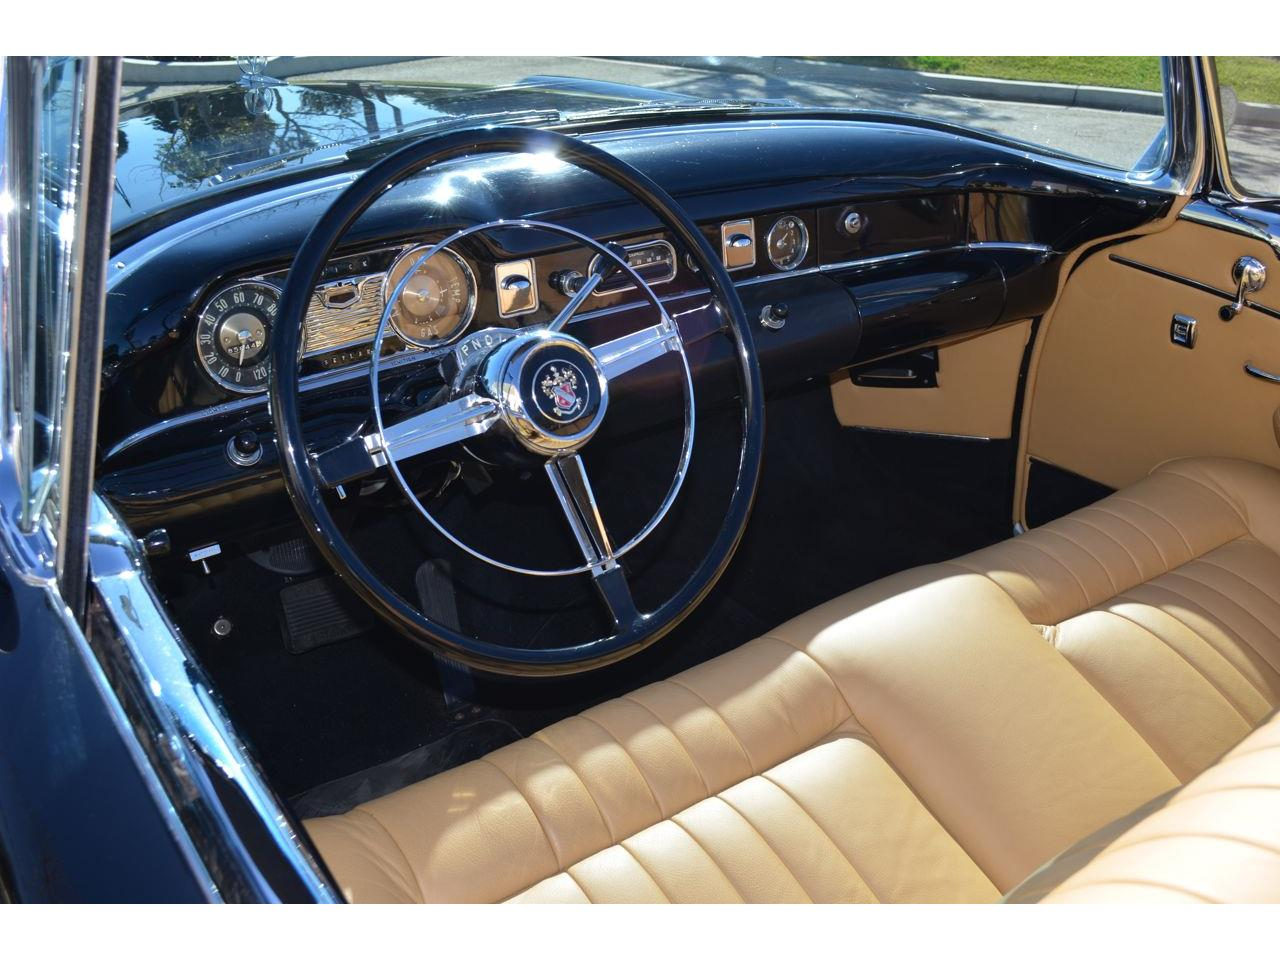 Large Picture of 1954 Buick Skylark located in California - $119,000.00 Offered by Spoke Motors - LT5D